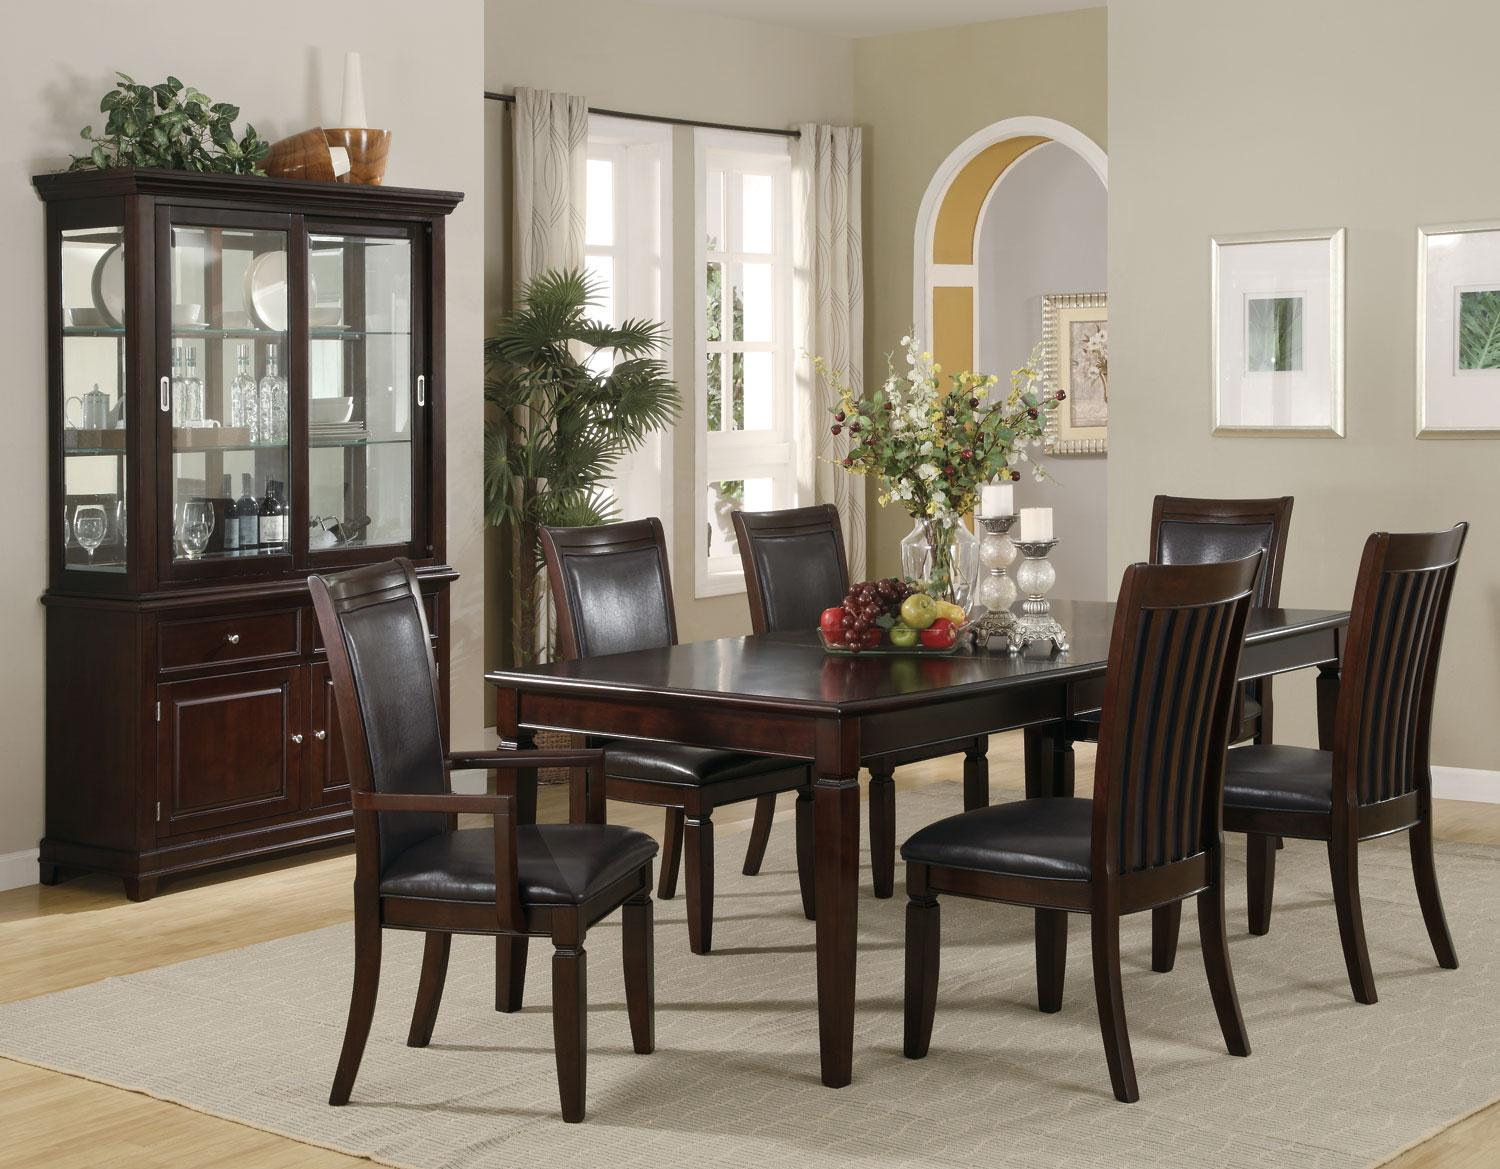 Walnut Dining Room Table   Formal Dining Sets   Quality Dining Room Table  And Chairs